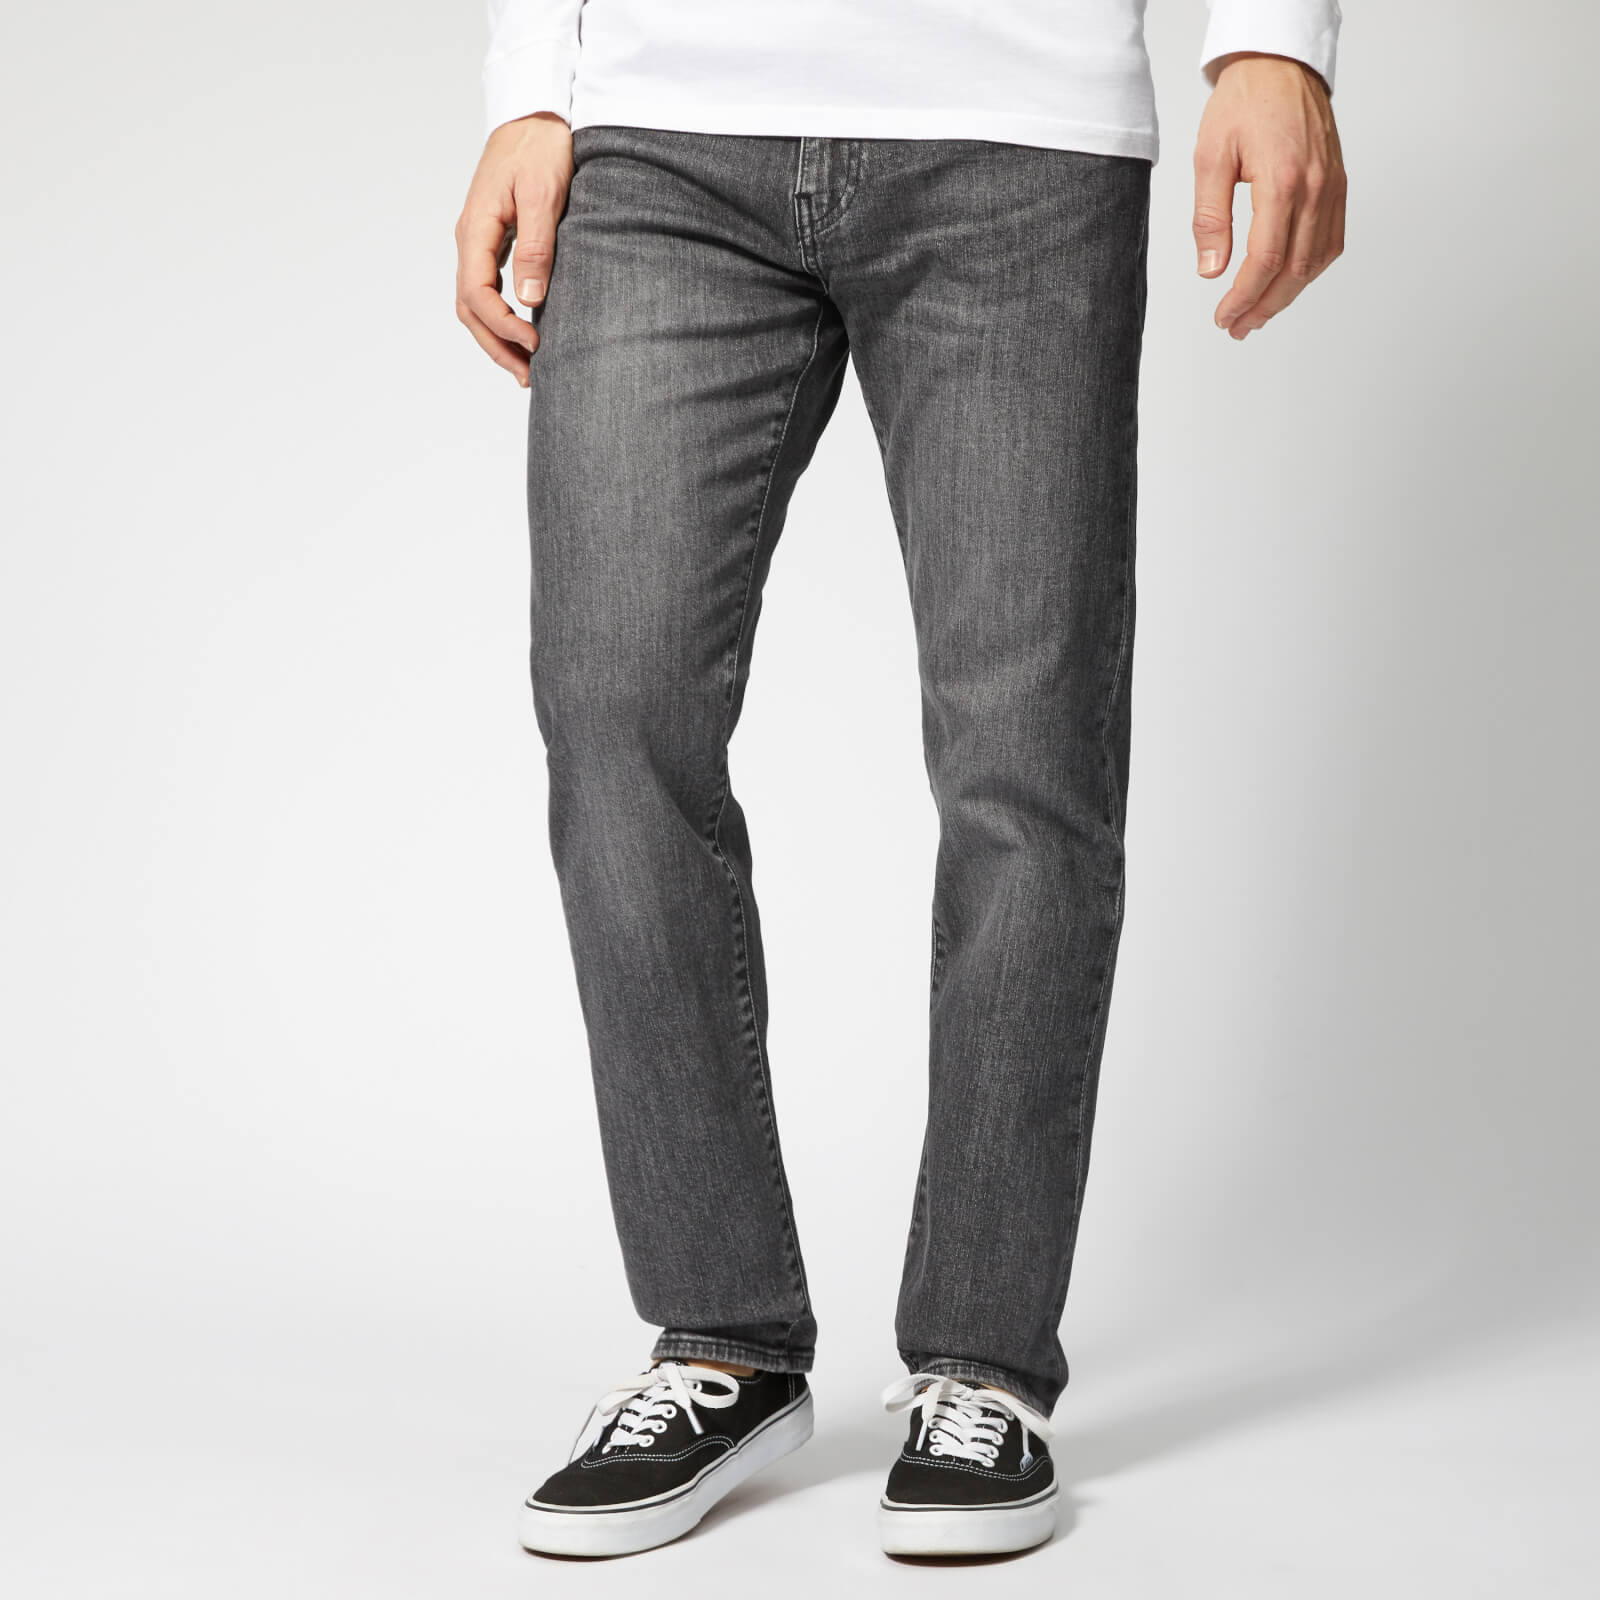 15b9b6a1a30877 Levi's Men's 502 Regular Taper Fit Jeans - Gobbler Mens Clothing |  TheHut.com